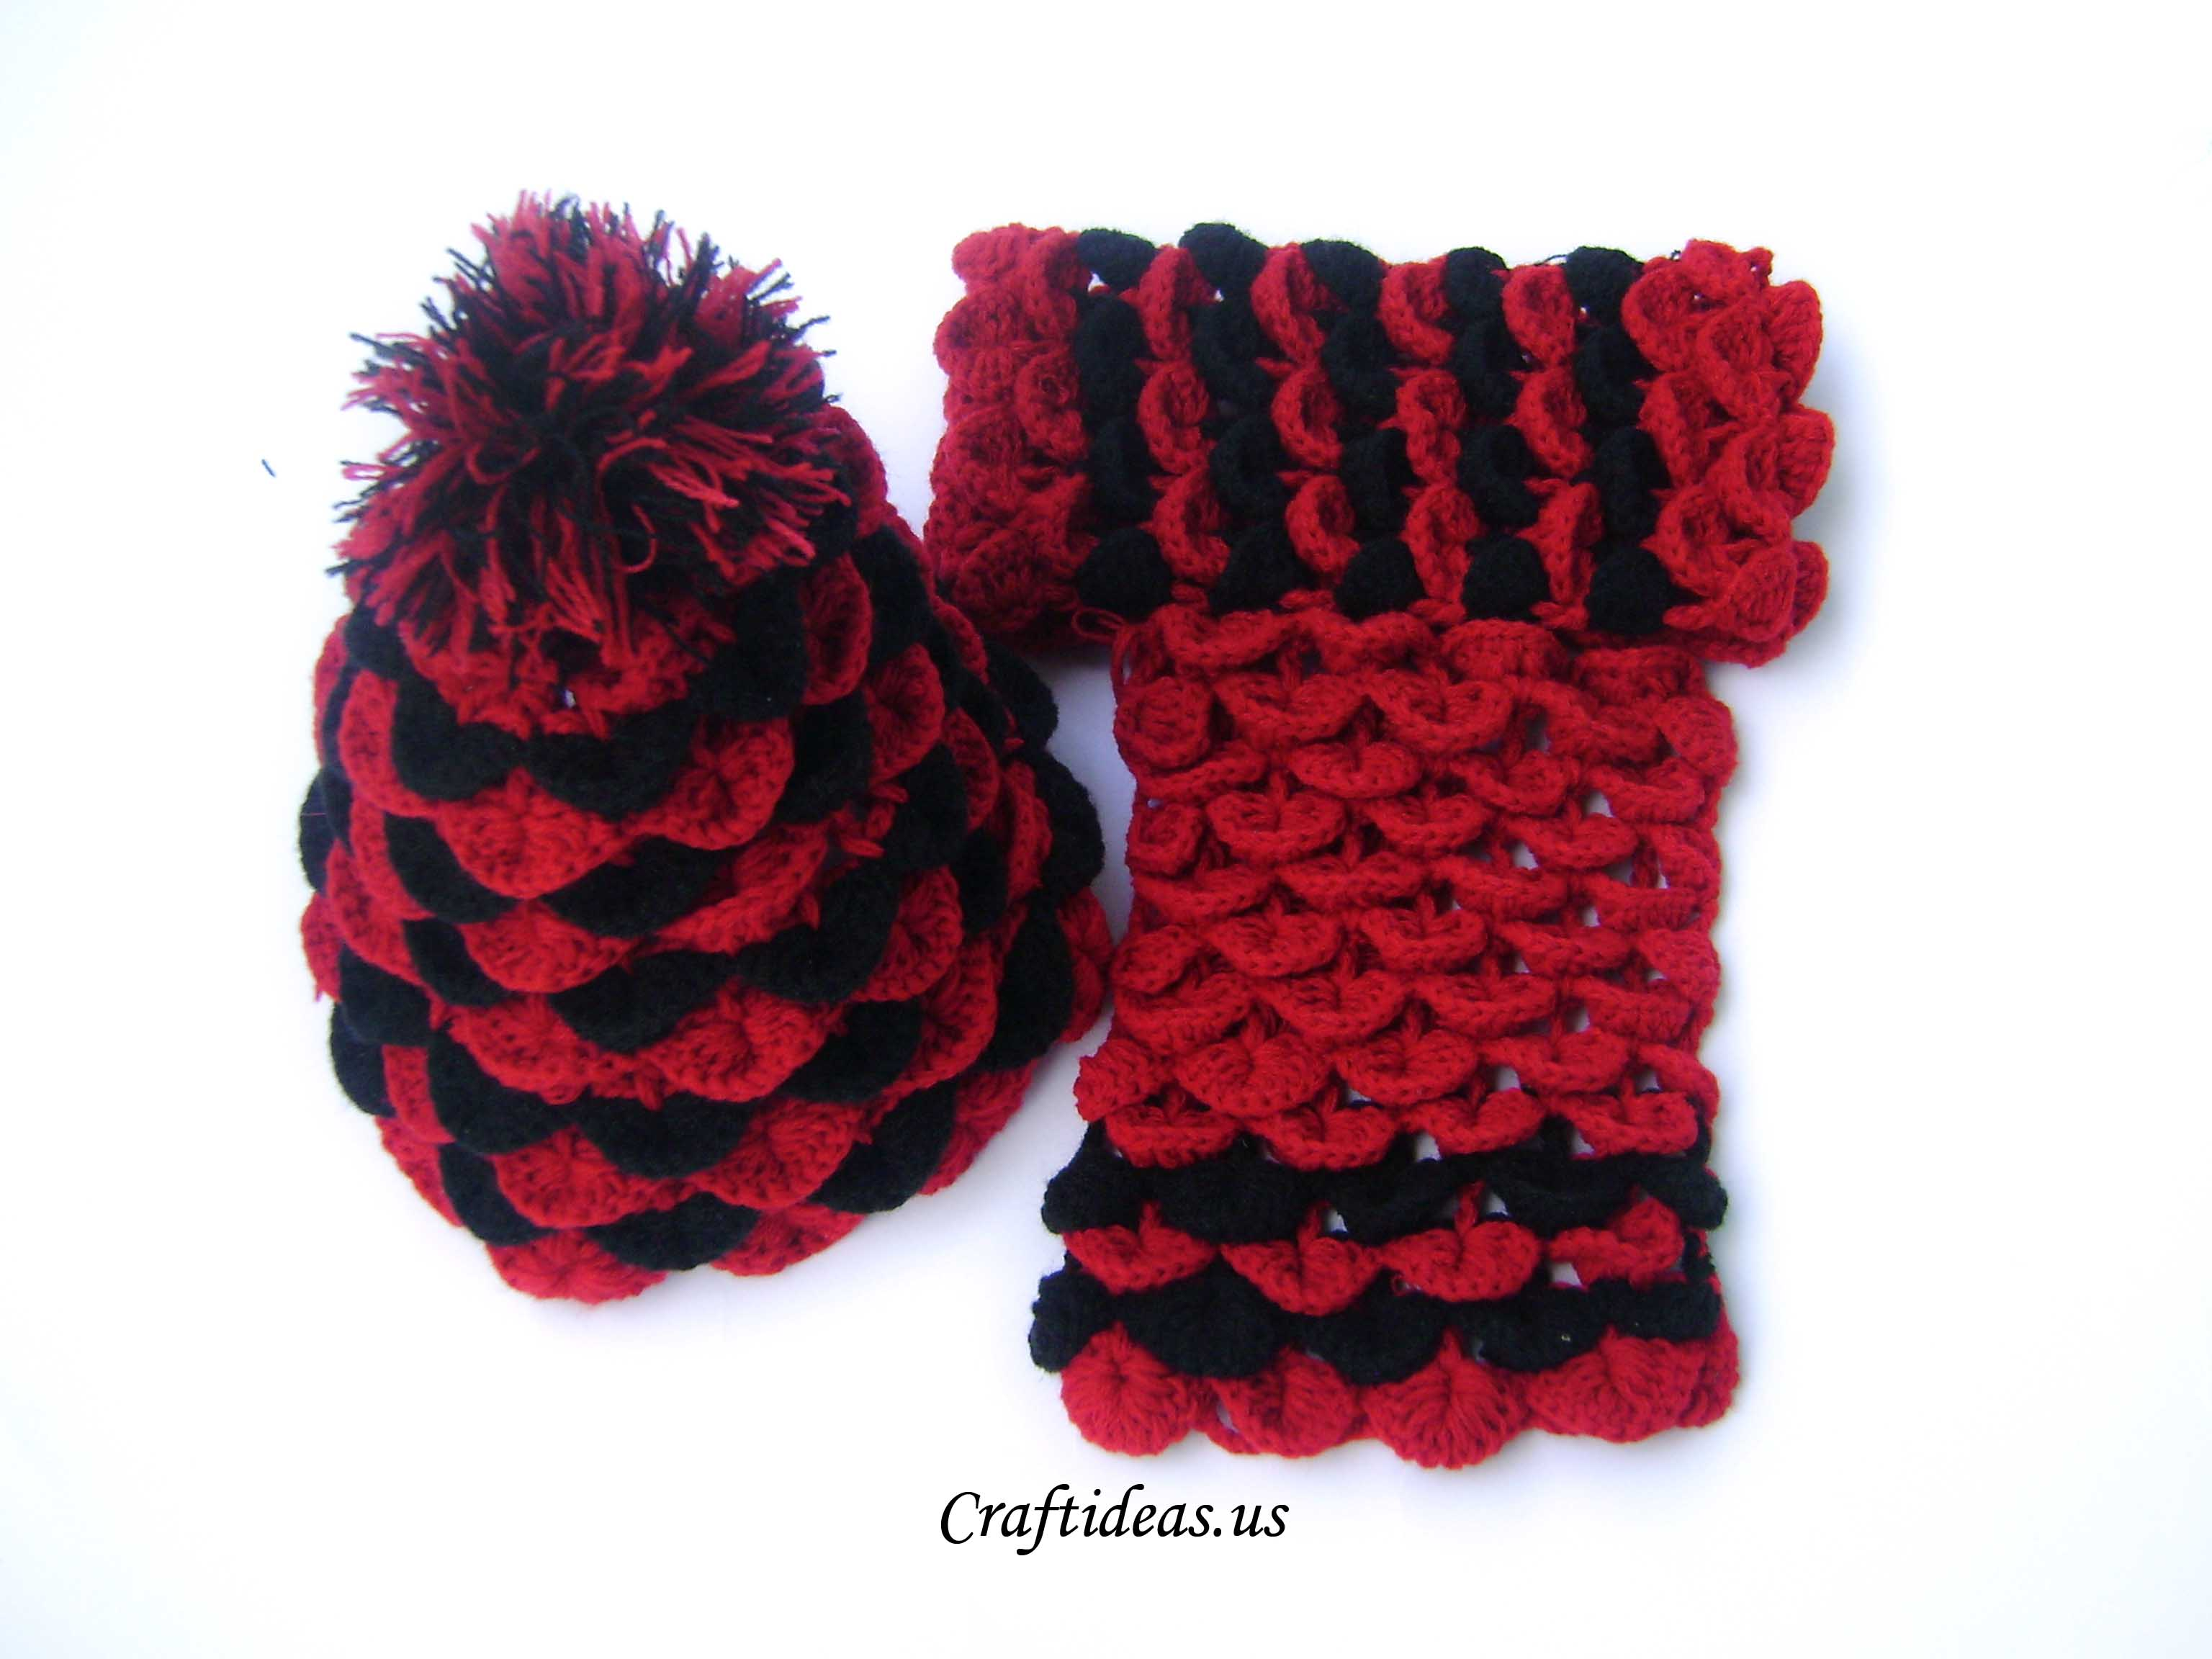 Crocheting Ideas : crochet ideas